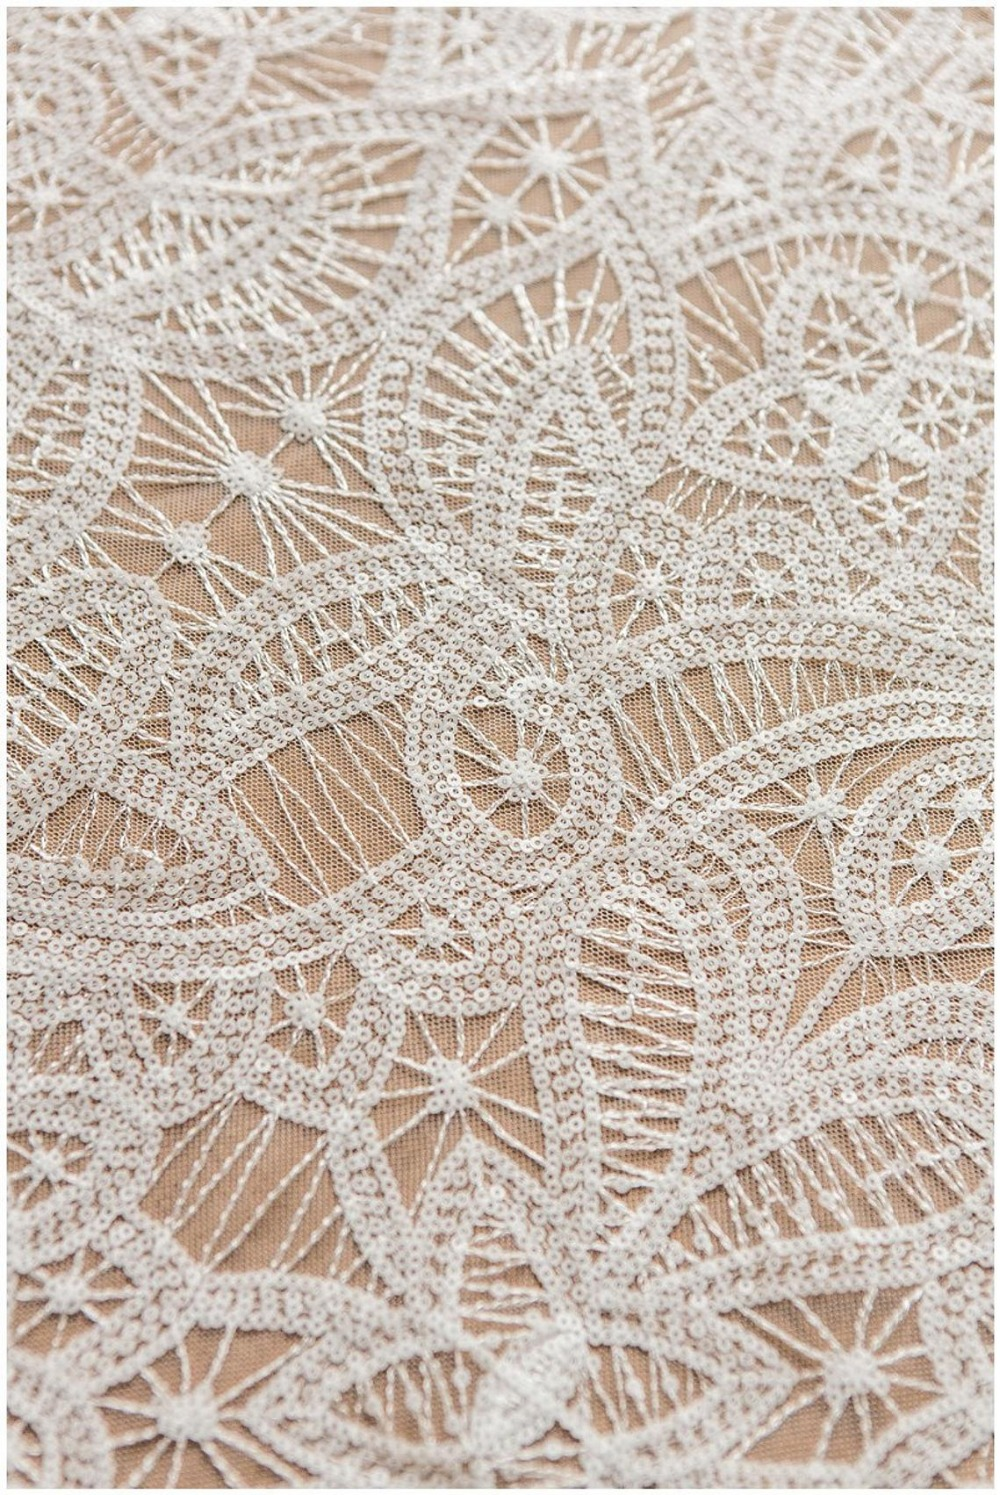 1 yard Modern geometric lace fabric with off white sequins bridal lace fabric wedding dress lace